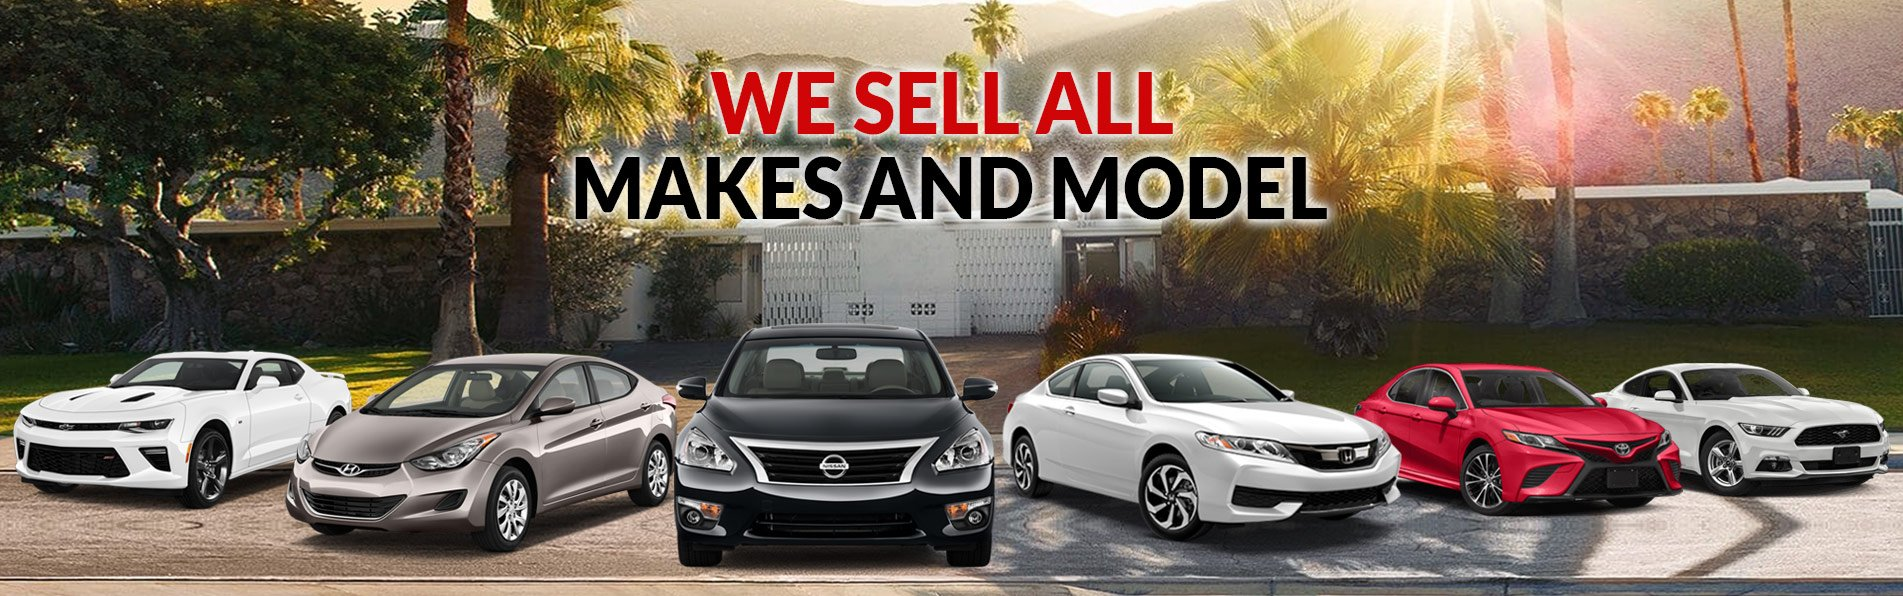 Used cars for sale in Conshohocken | Pro-Sport Motors. Conshohocken PA